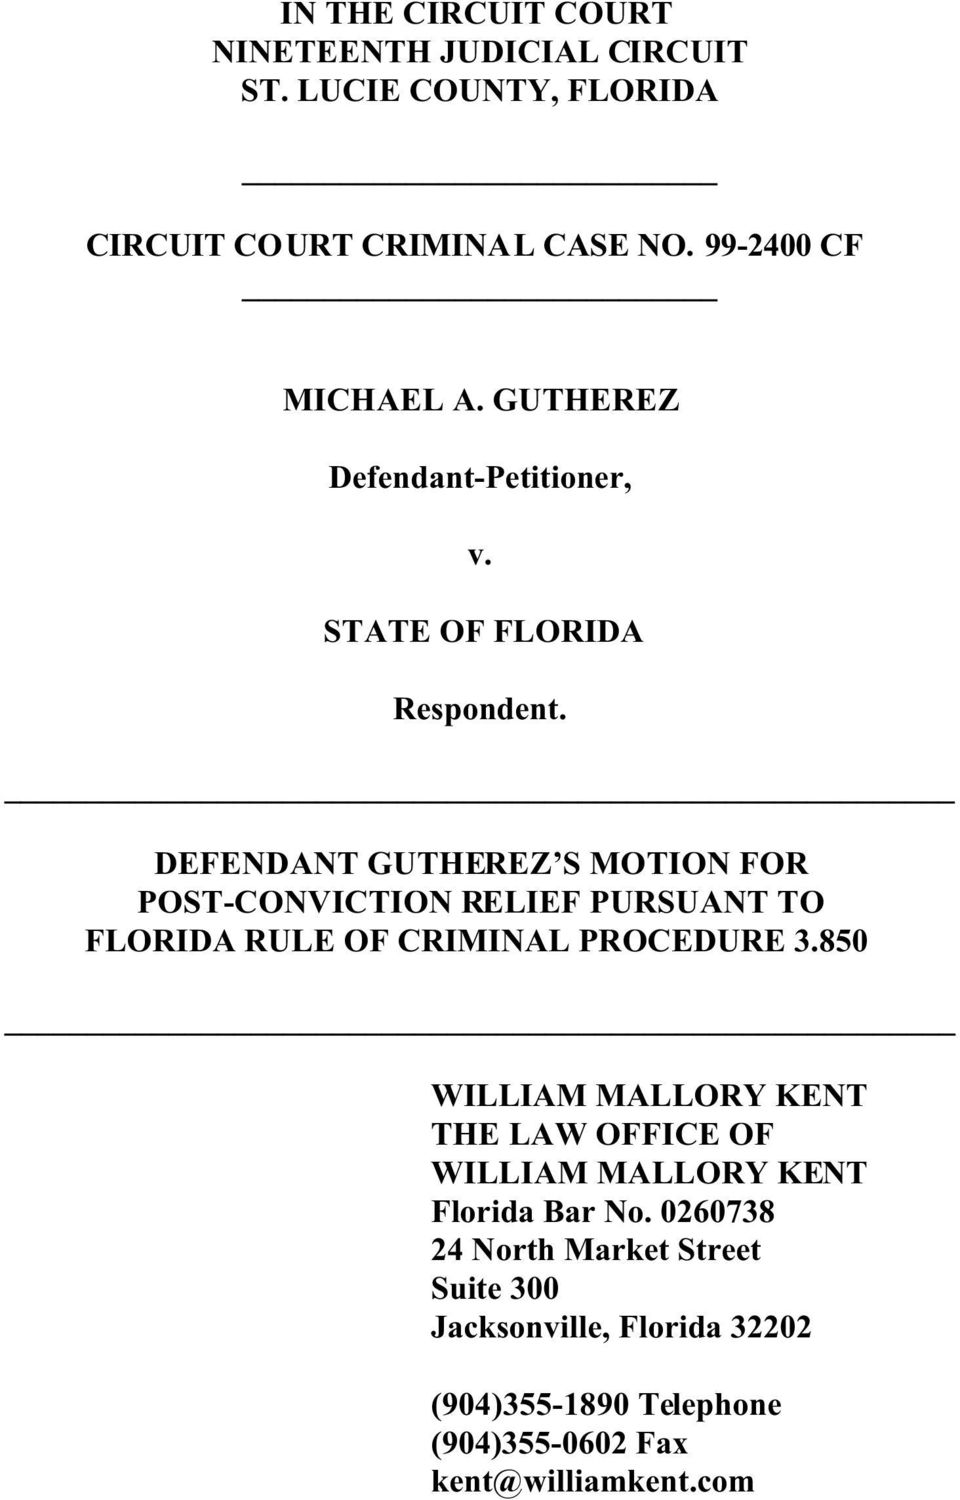 DEFENDANT GUTHEREZ S MOTION FOR POST-CONVICTION RELIEF PURSUANT TO FLORIDA RULE OF CRIMINAL PROCEDURE 3.